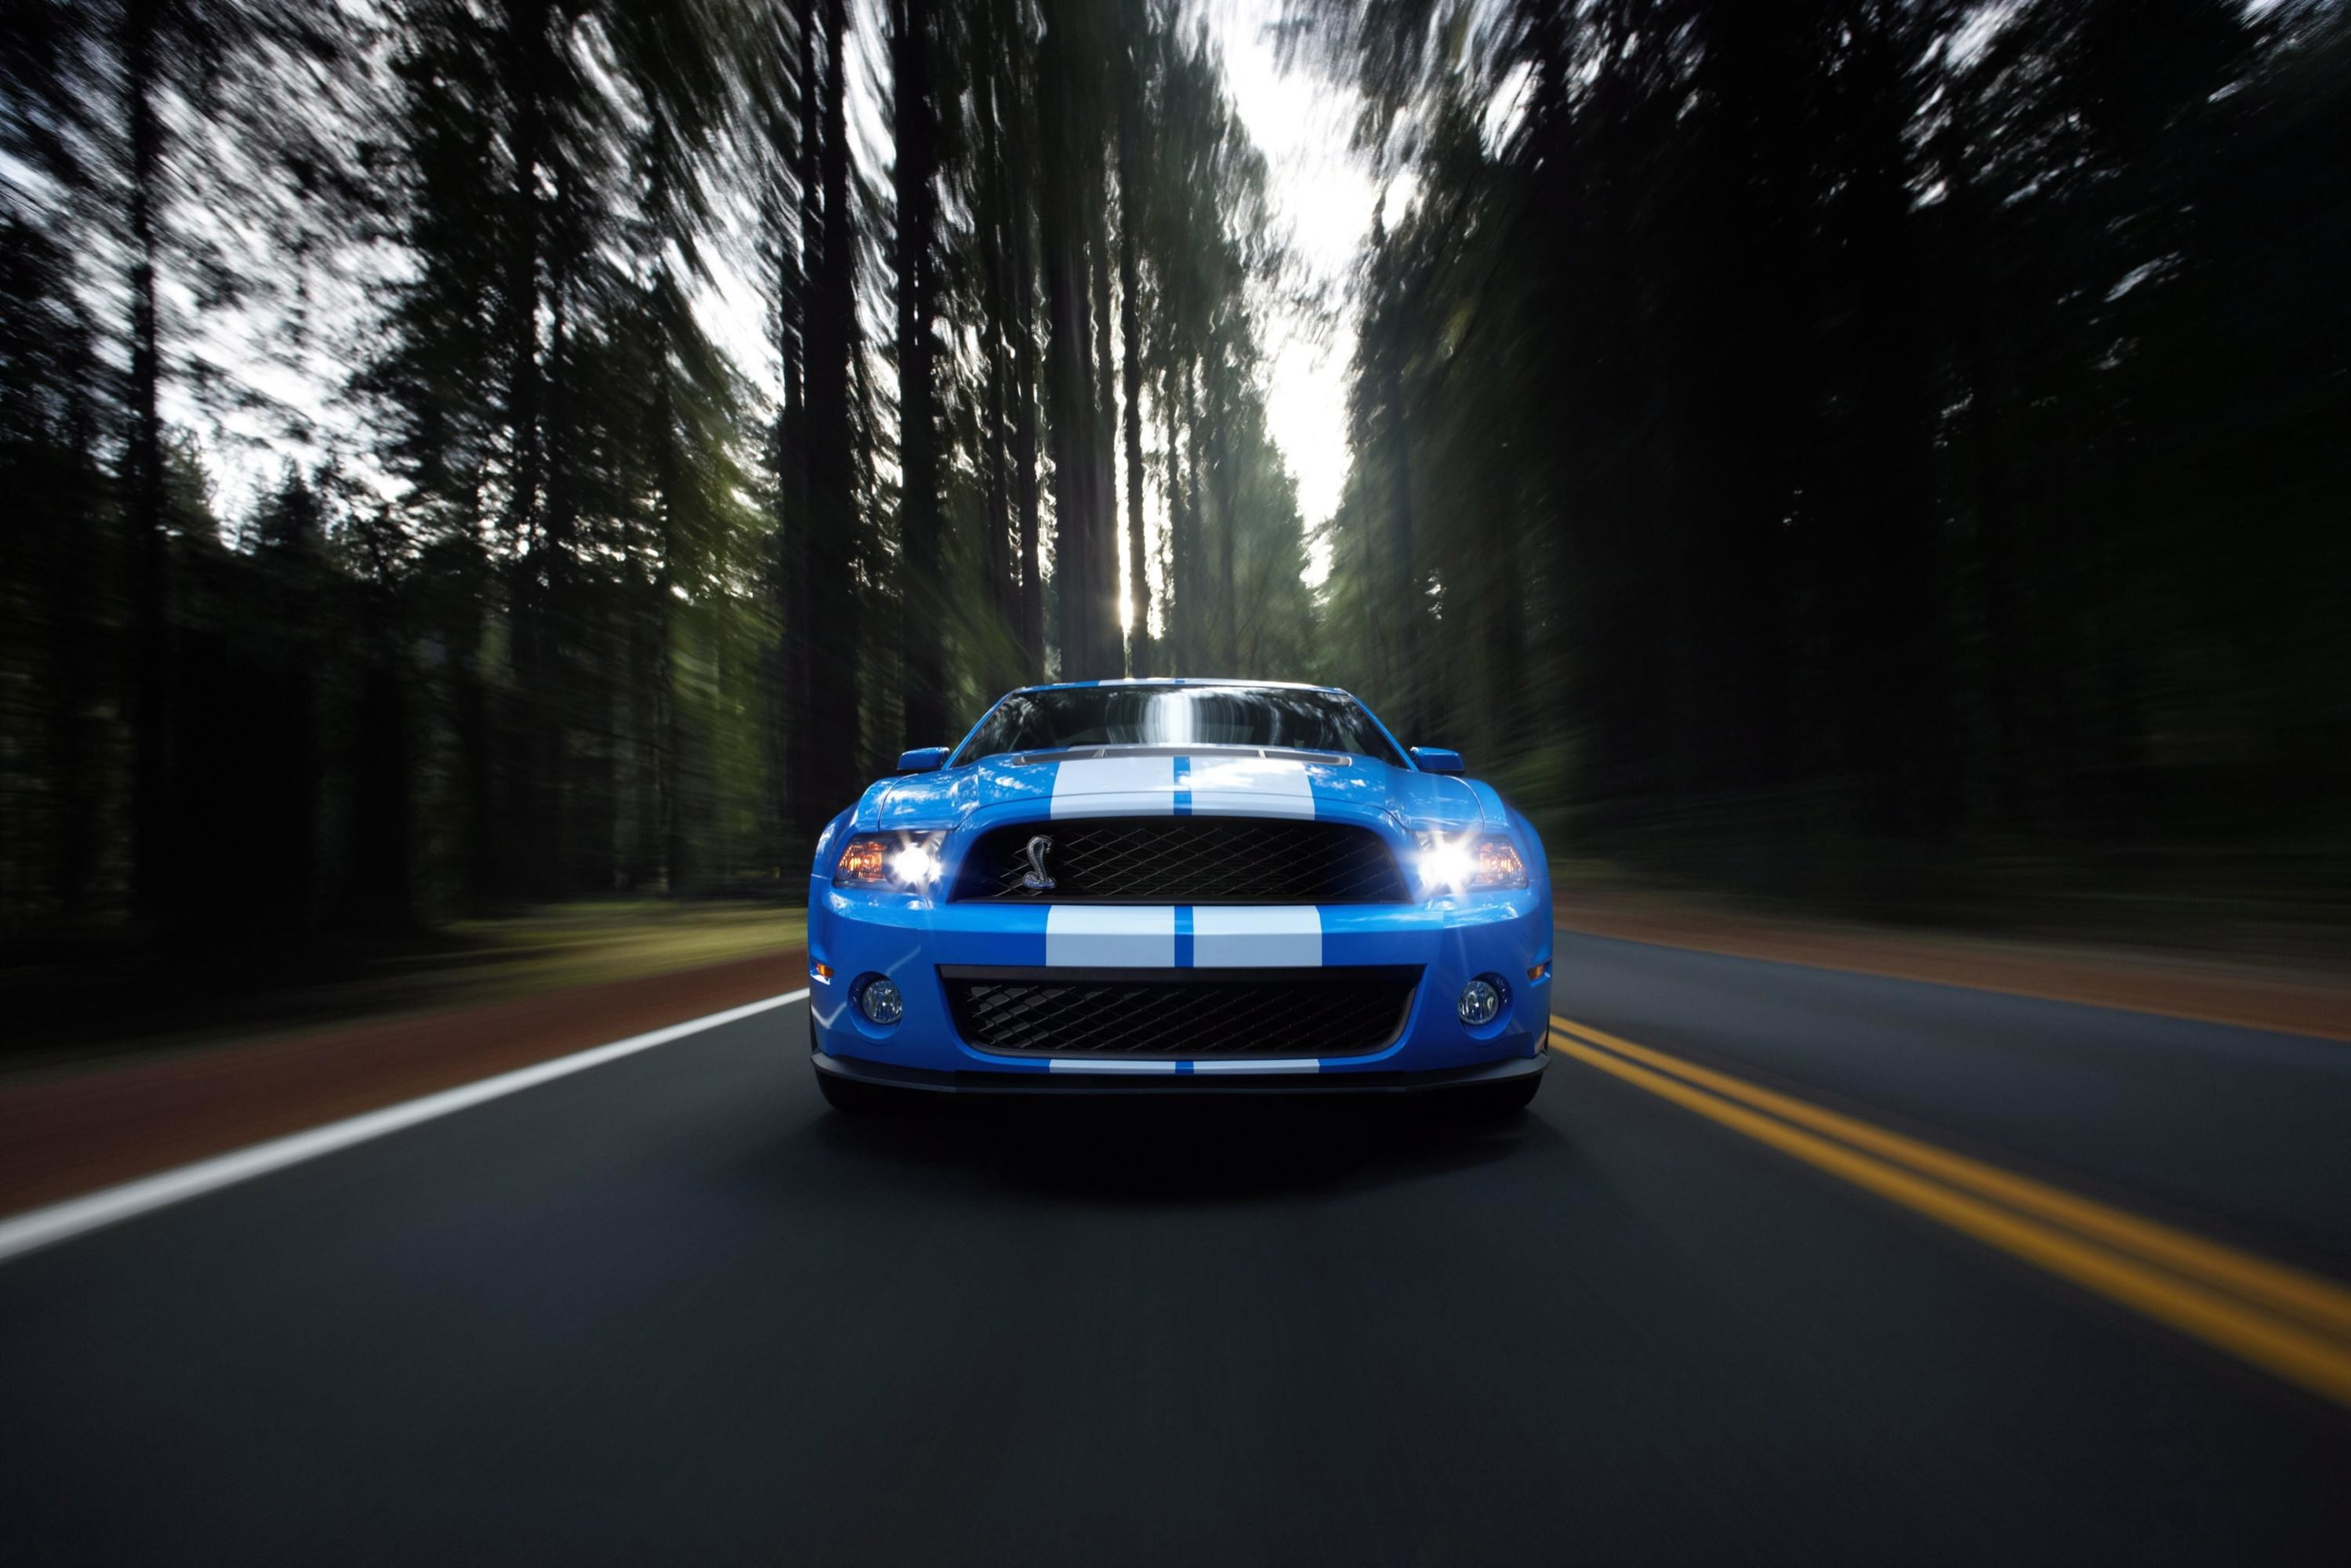 Blue Ford Mustang #Hd #Cars